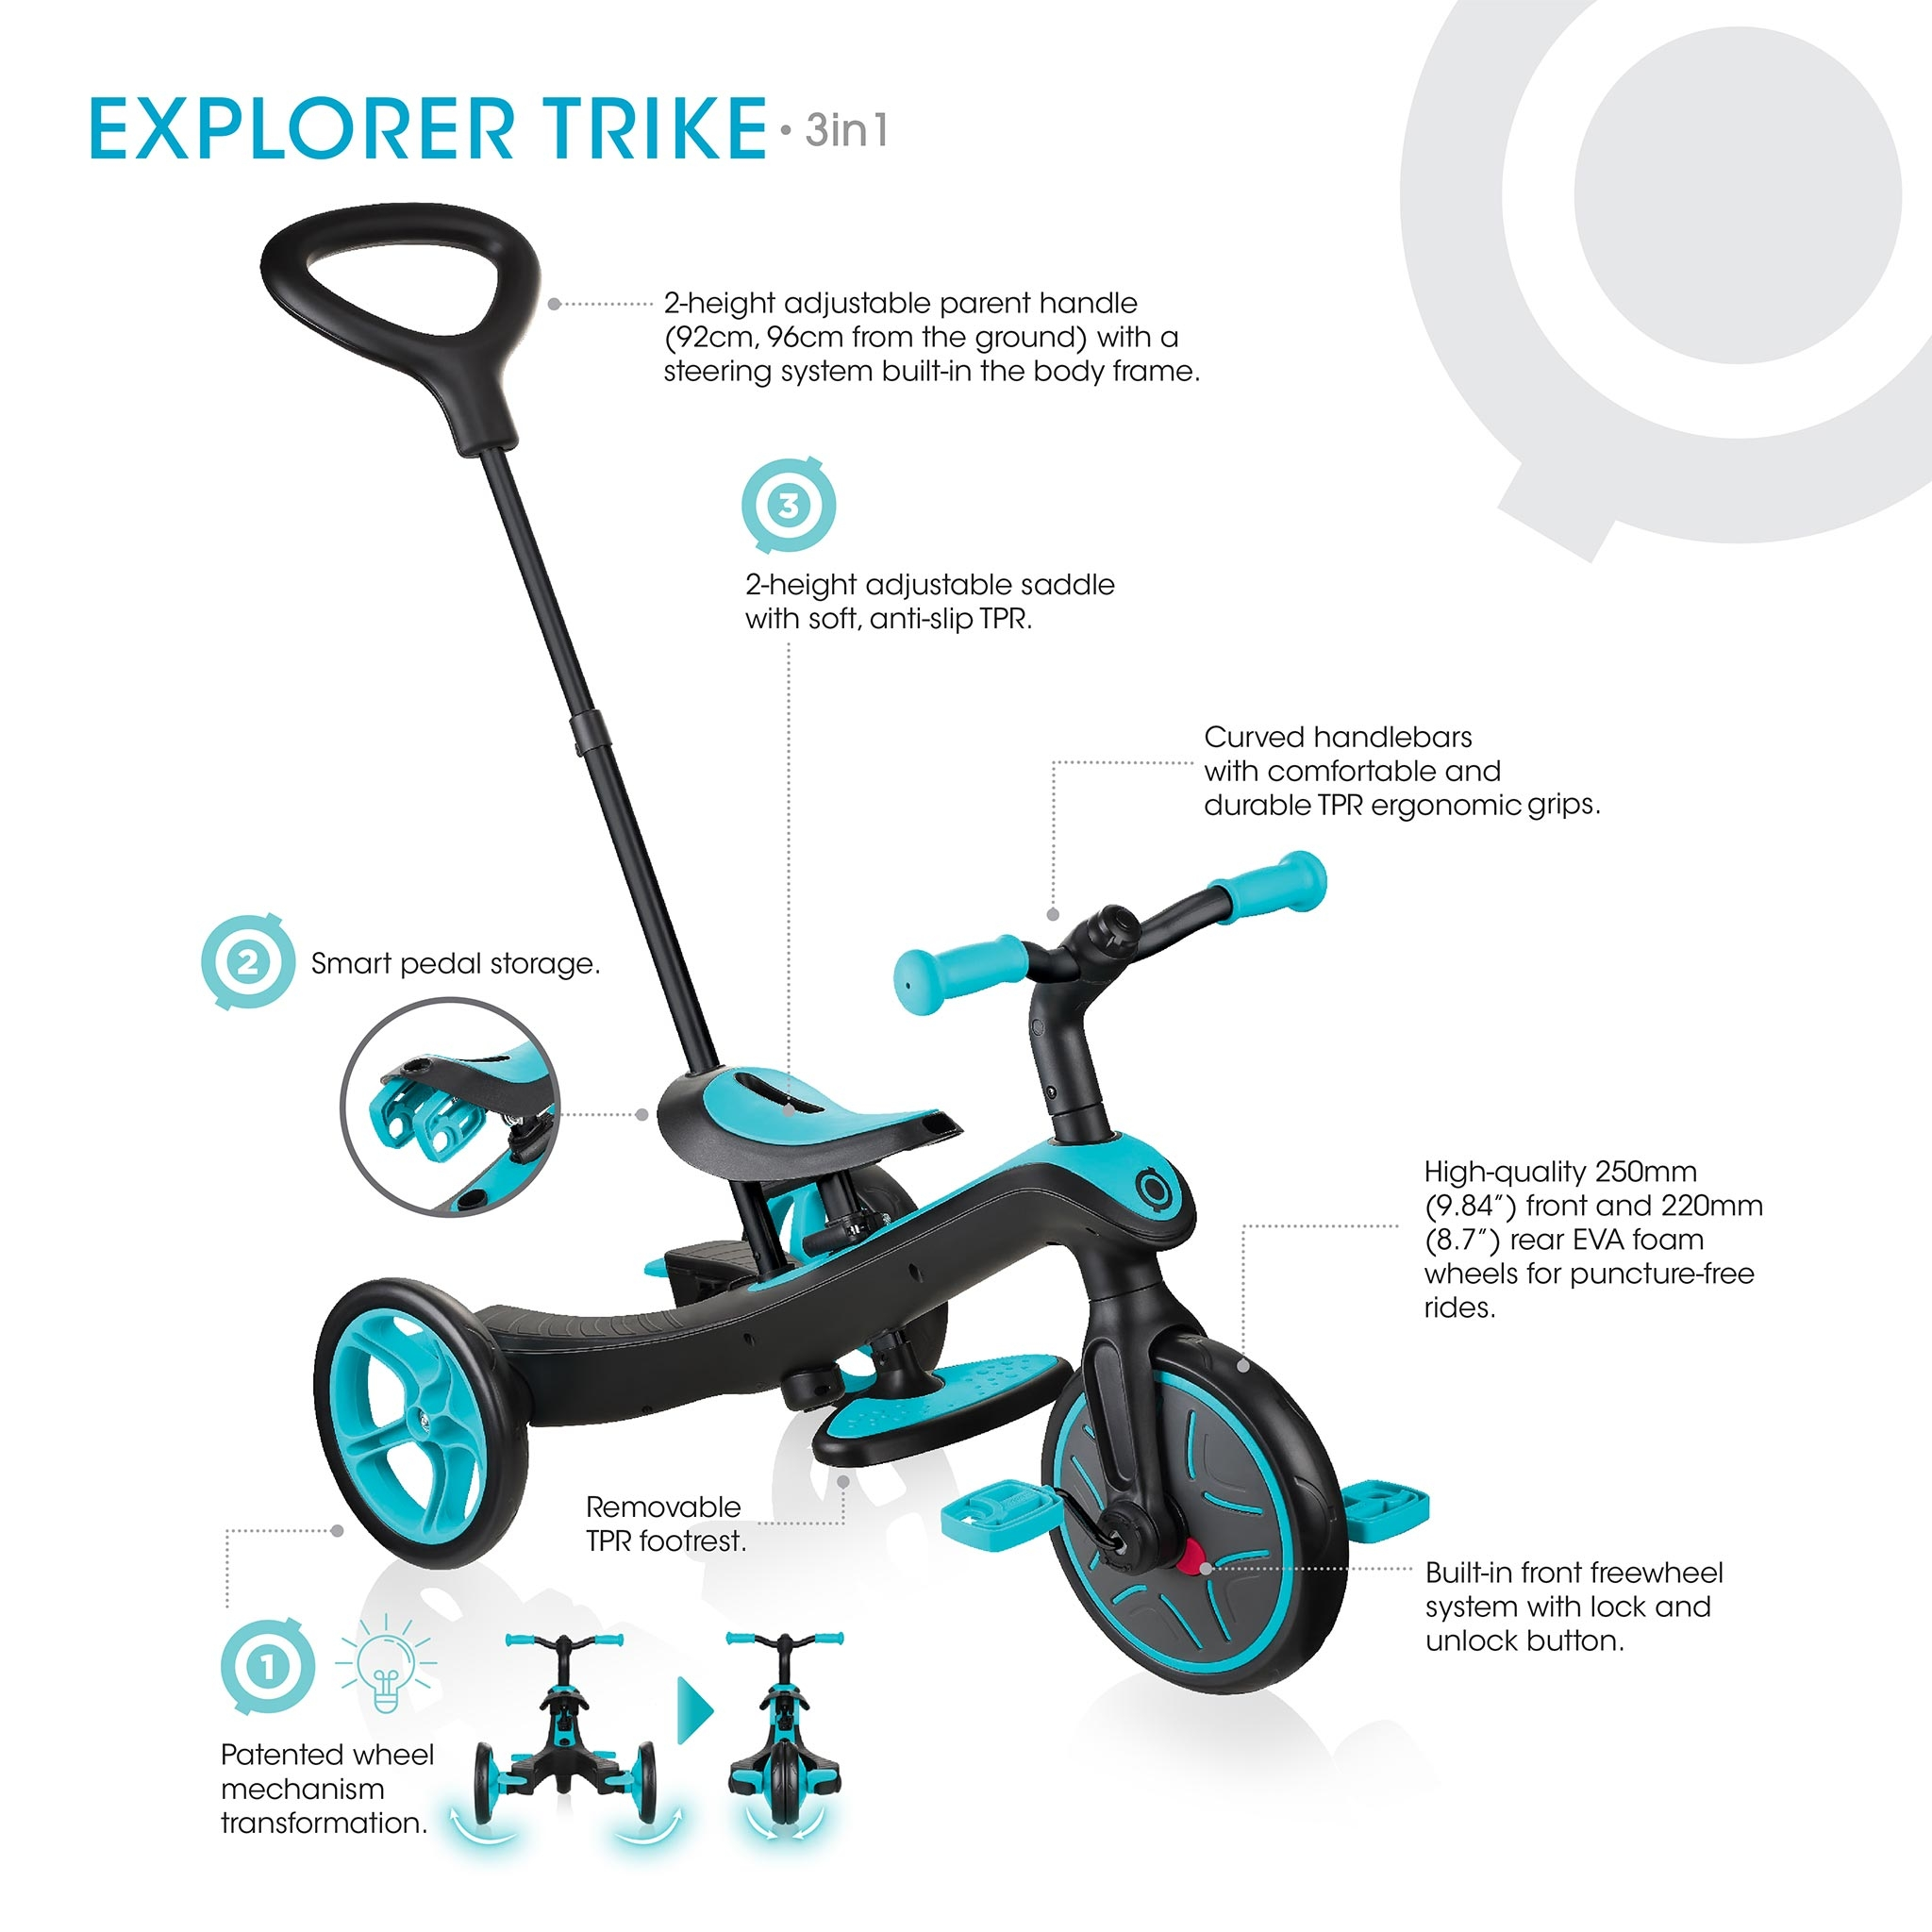 All-in-one baby tricycle for toddlers aged 18 months+ - Globber EXPLORER TRIKE 3in1 3